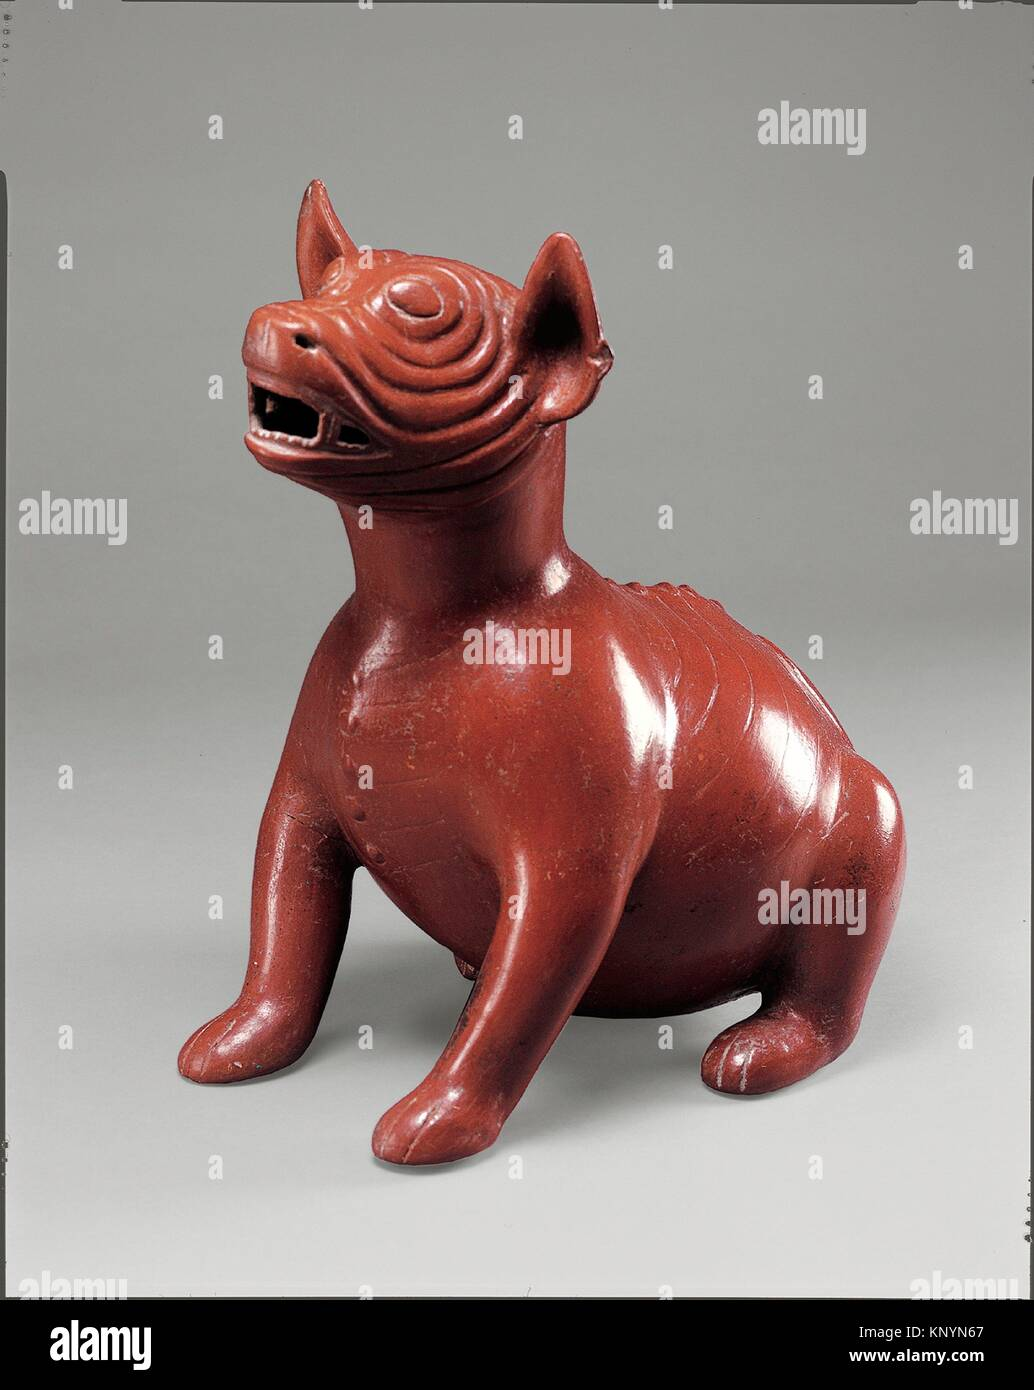 Snarling Dog. Date: 200 B.C.-A.D. 300; Geography: Mexico, Mesoamerica, Colima; Culture: Colima; Medium: Ceramic; - Stock Image